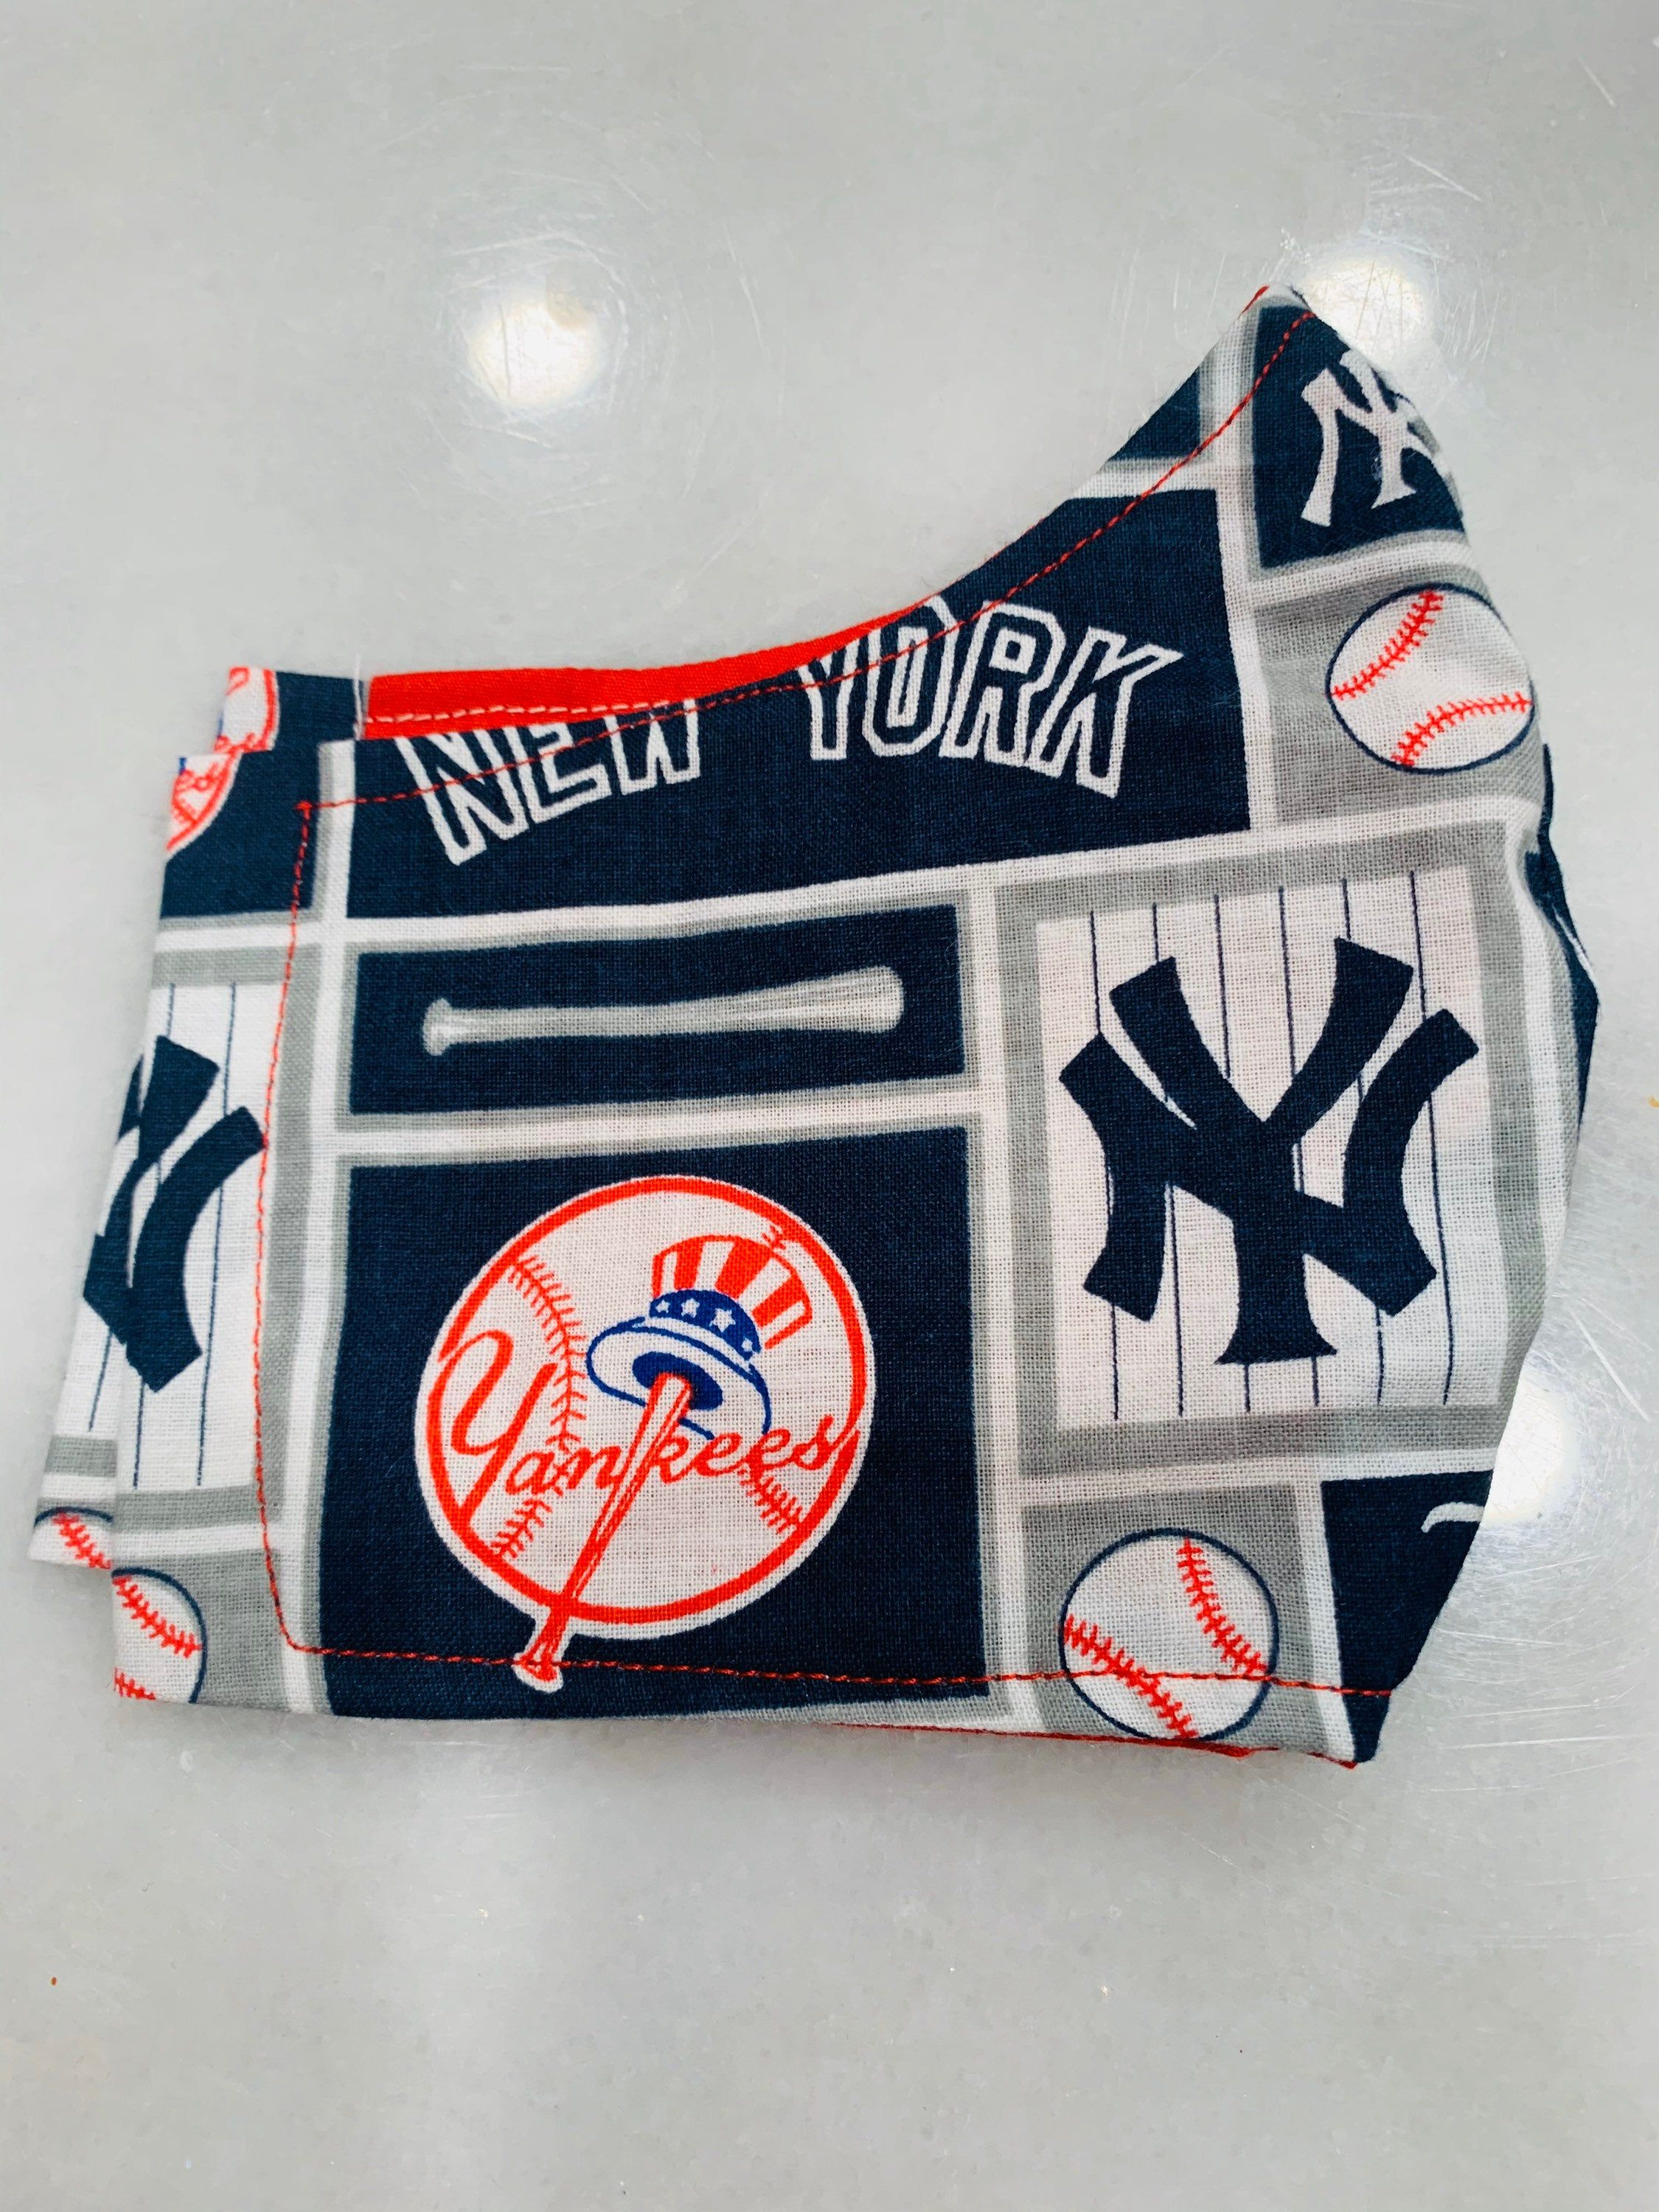 Ny Yankees Face Mask With Pocket For Filter Elastic Bands In 2020 Face Mask Yankees Ny Yankees